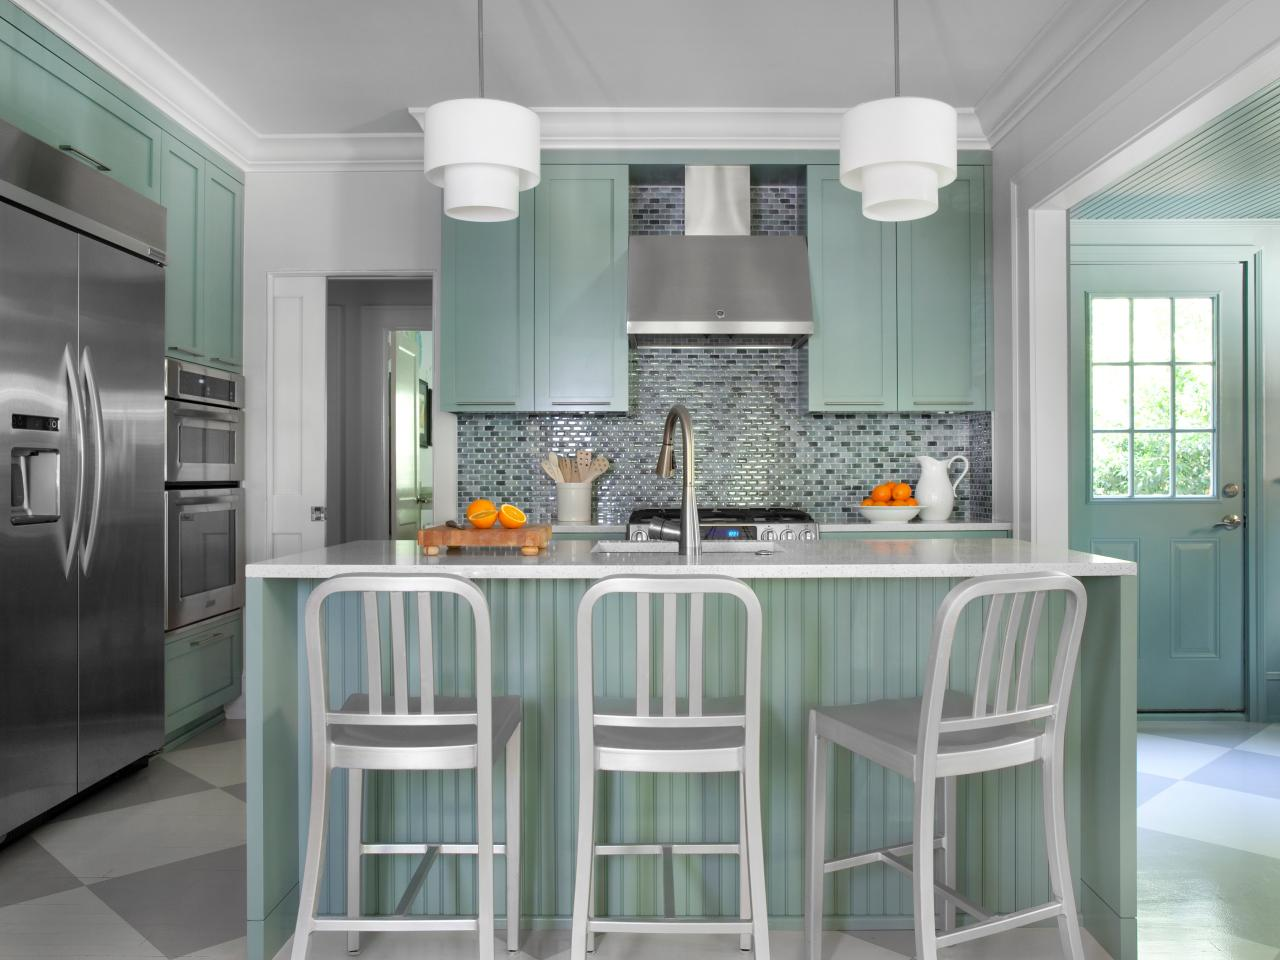 Shaker Kitchen Cabinets Pictures Ideas  Tips From HGTV HGTV - Kitchen front design